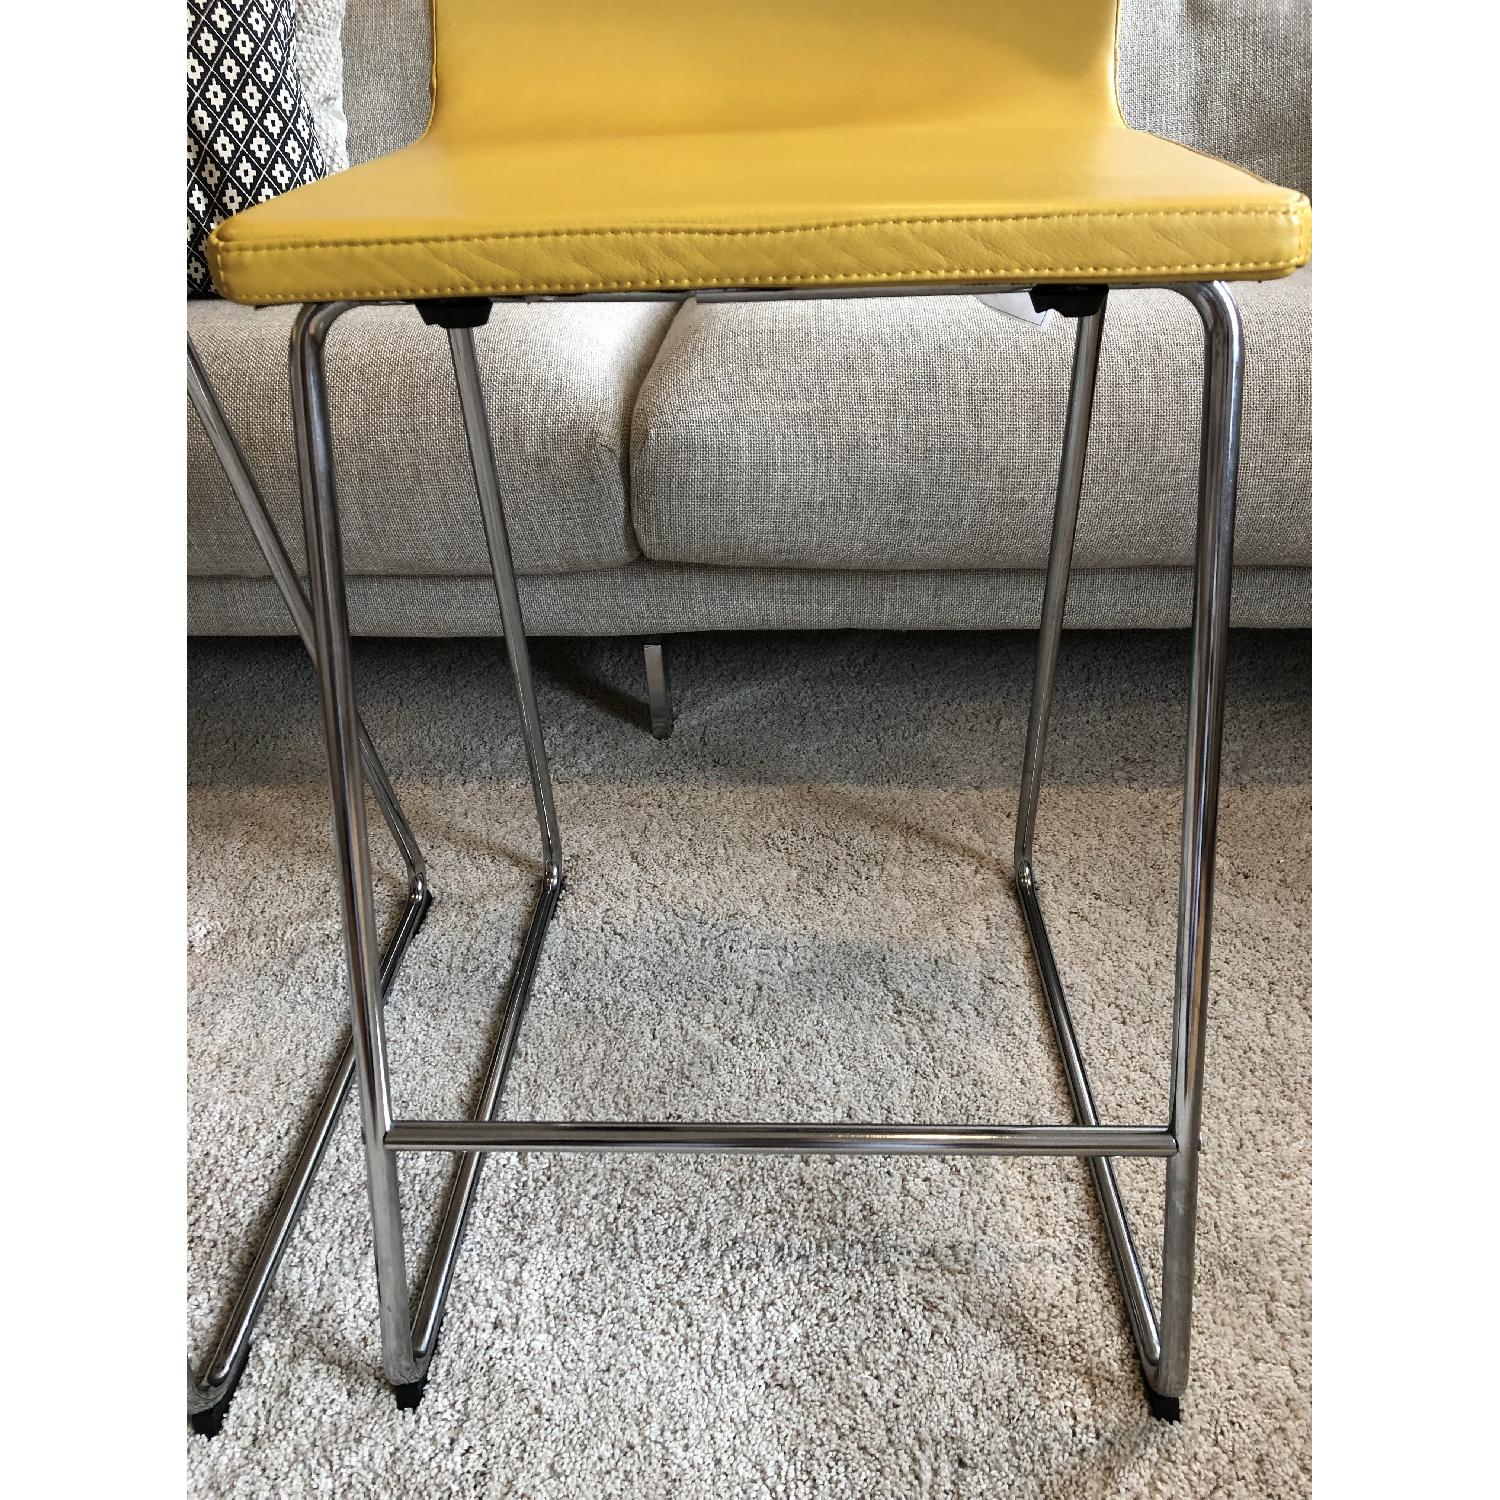 Ikea Bernhard Bar Stools w/ Backrest-5